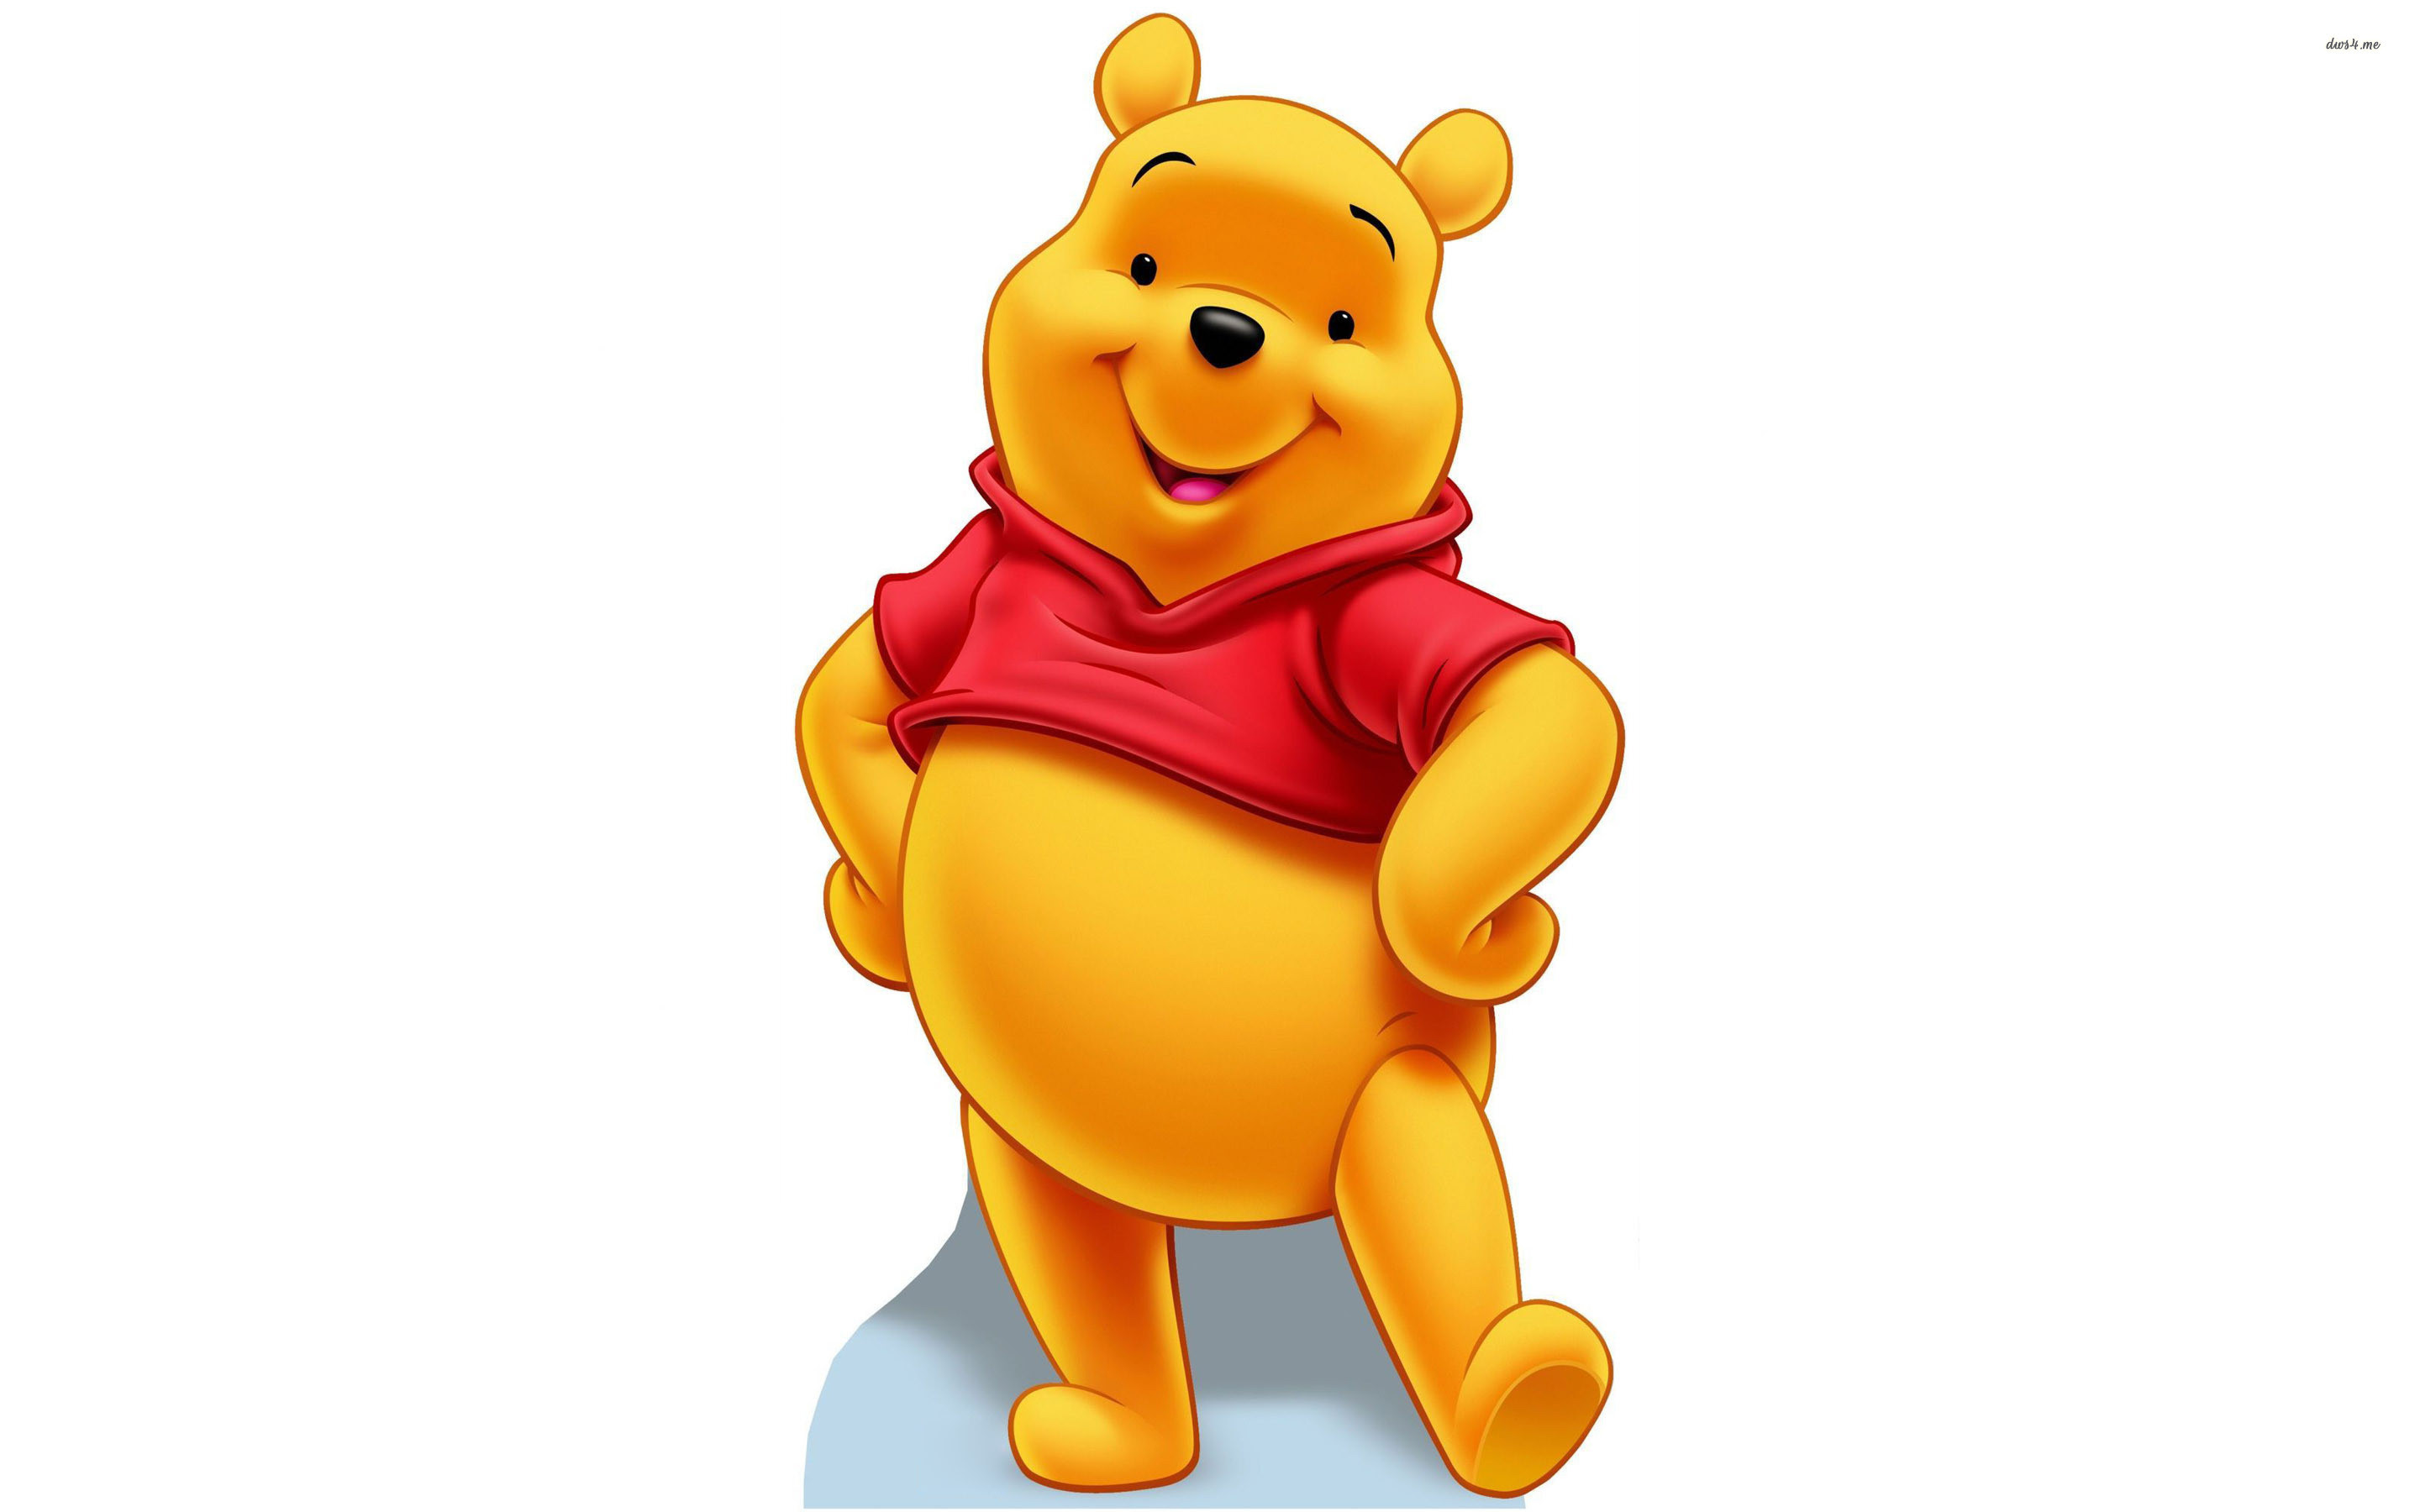 Pooh Bear Wallpapers (64+ images)